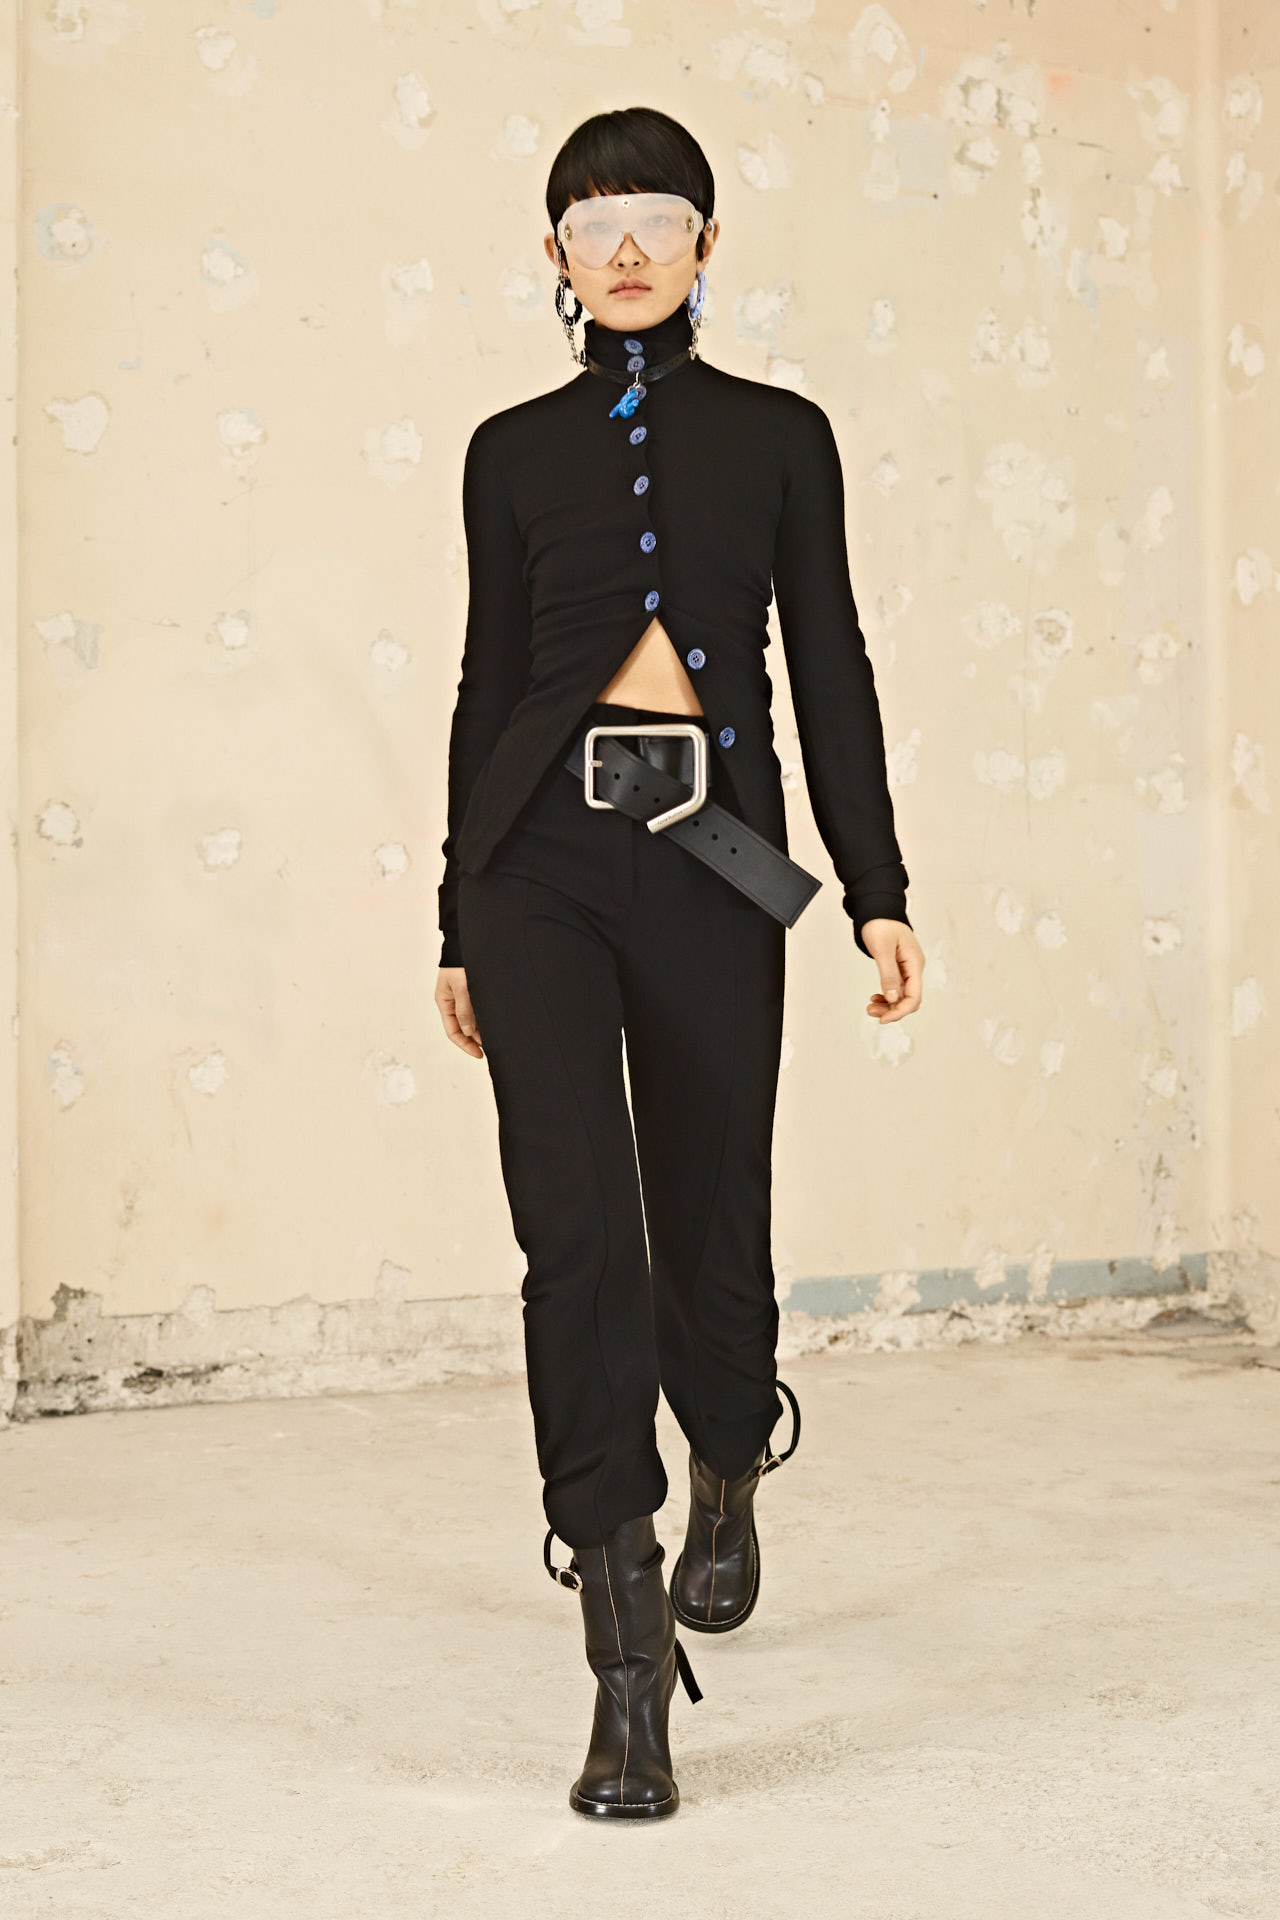 Look Fall/Winter 2021, image 30